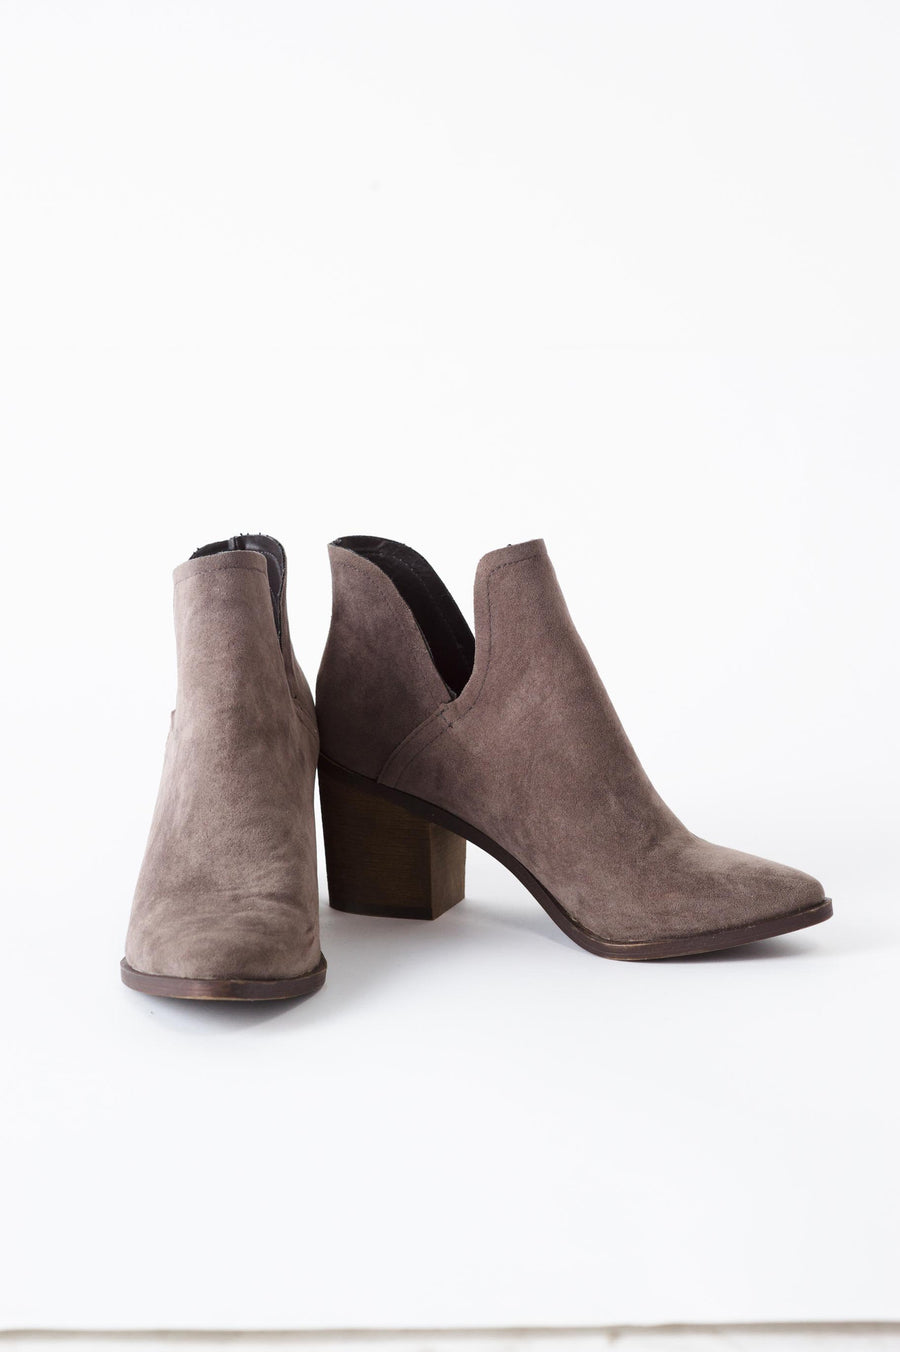 Indi Curve Booties FINAL SALE - Bohme